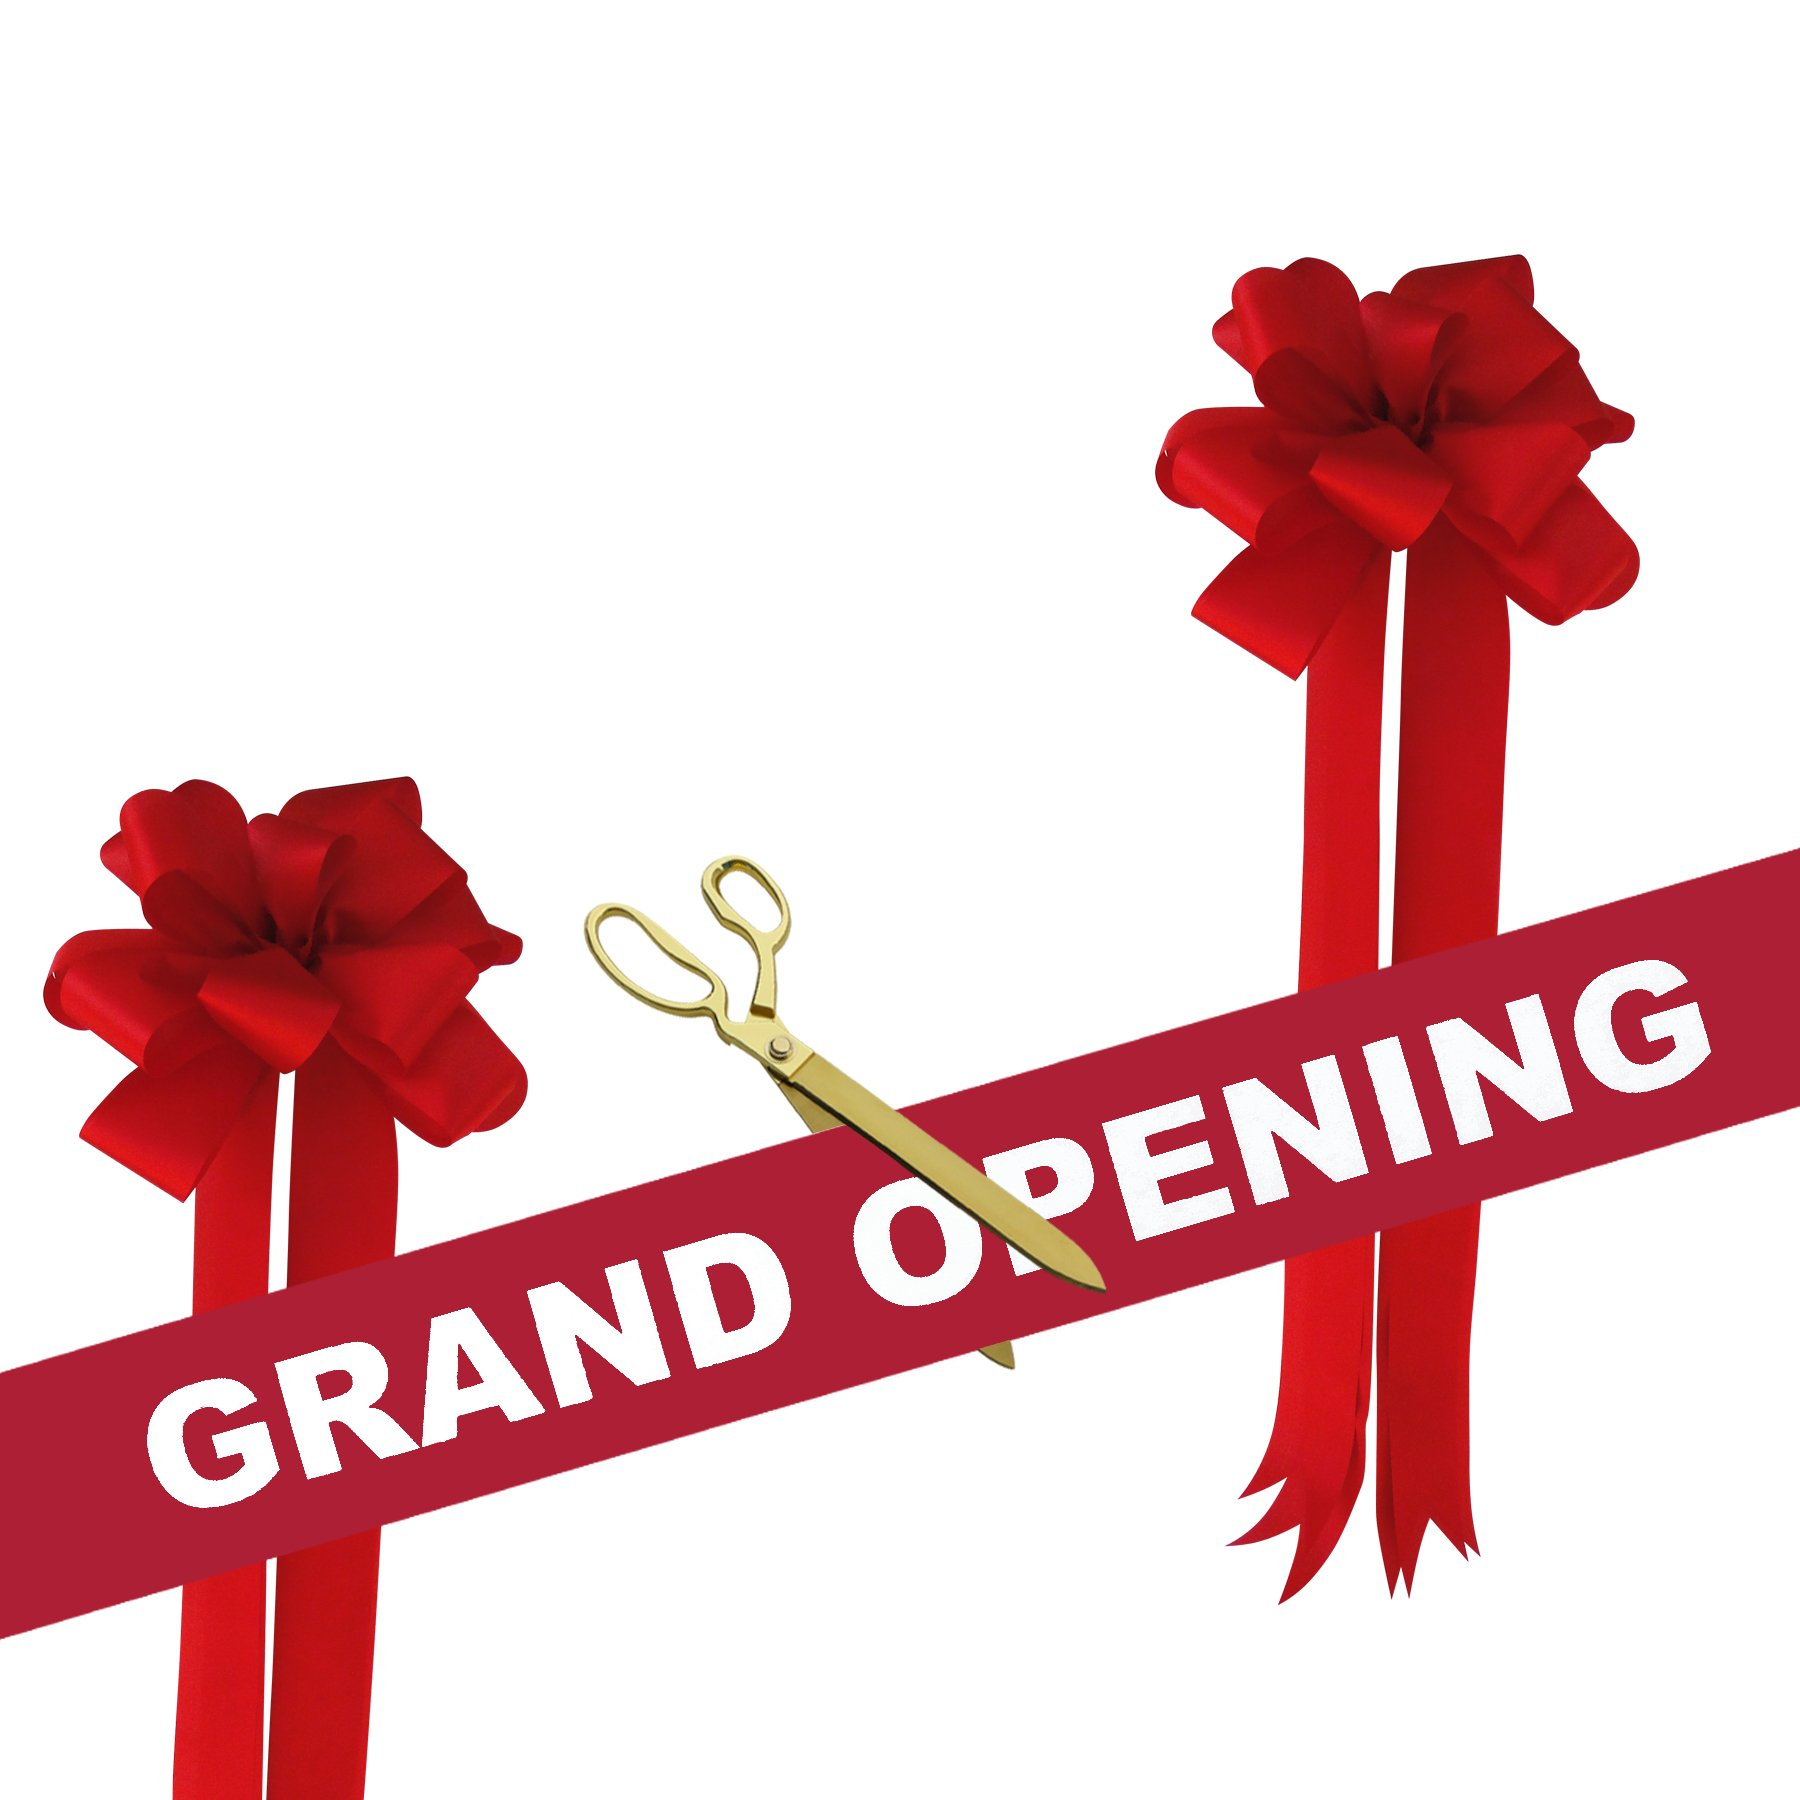 Grand Opening Kit - 15'' Gold Plated Ceremonial Ribbon Cutting Scissors with 5 Yards of 6'' Red Grand Opening Ribbon White Letters and 2 Red Bows